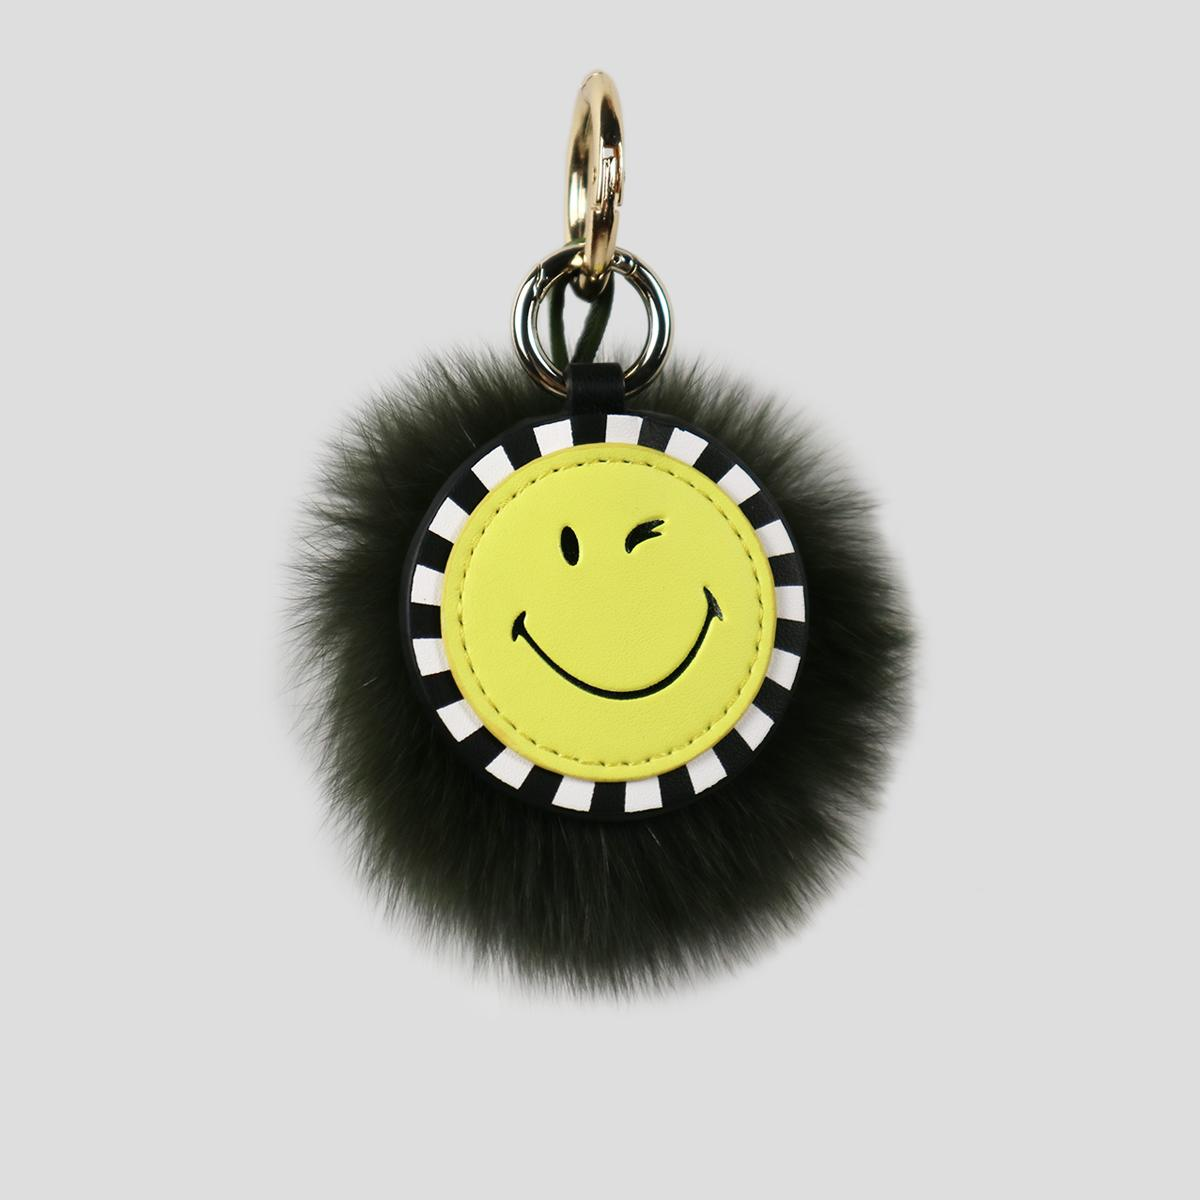 Smileyworld New Style 2018 Women s Bag Cute Smiley Fuzzy Ball Pendant  Accessories Keychain Gift 5471c05ef